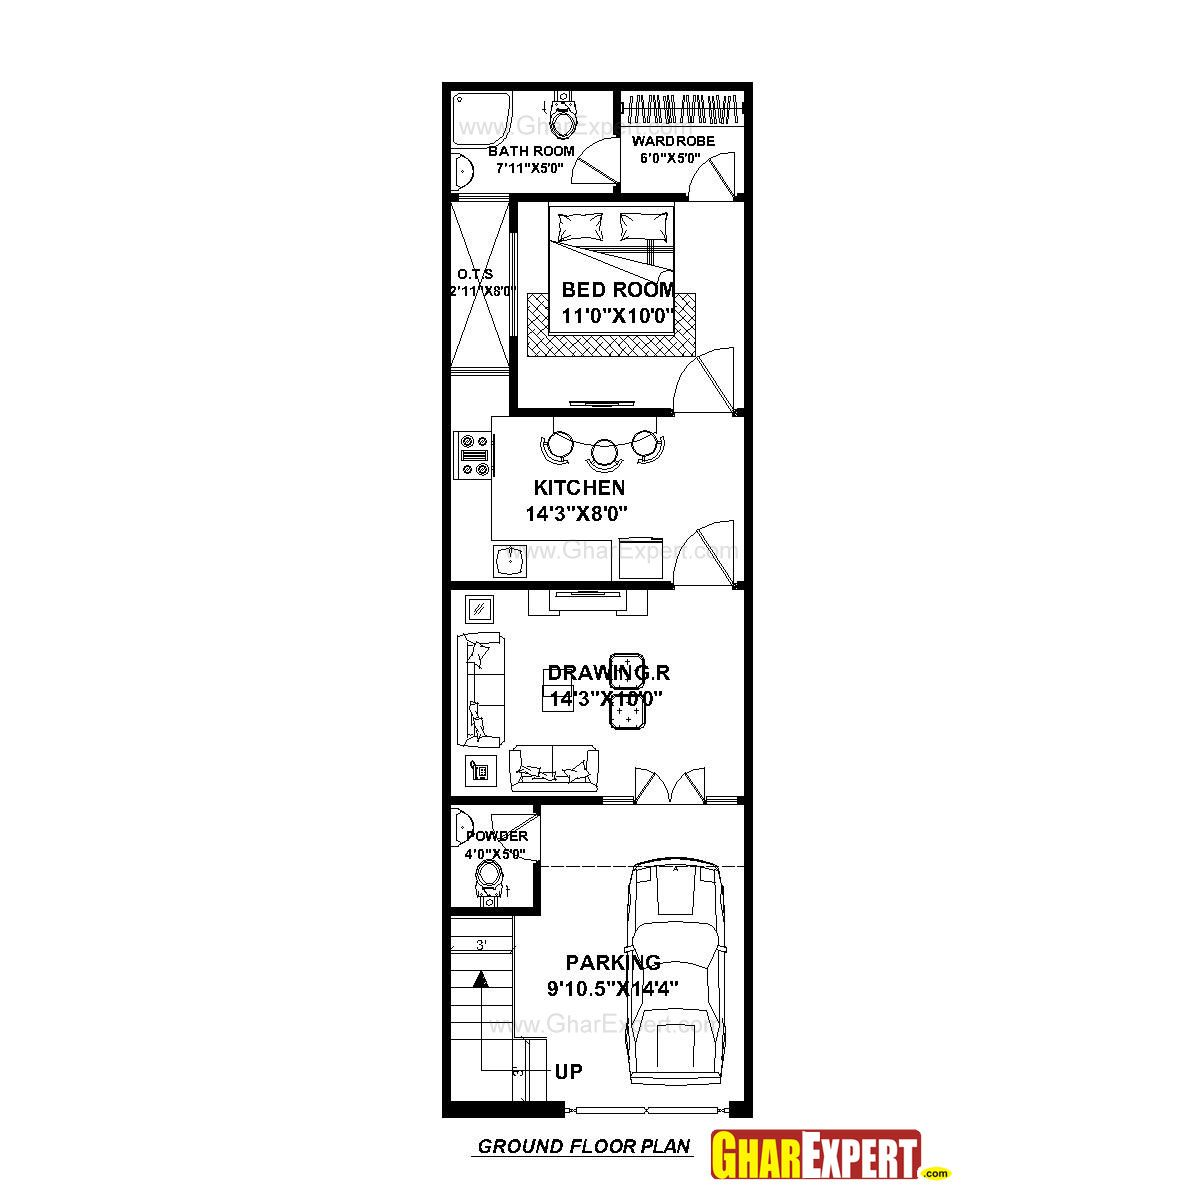 house plan for 15 feet by 50 feet plot plot size 83 square yards gharexpert com [ 1200 x 1200 Pixel ]